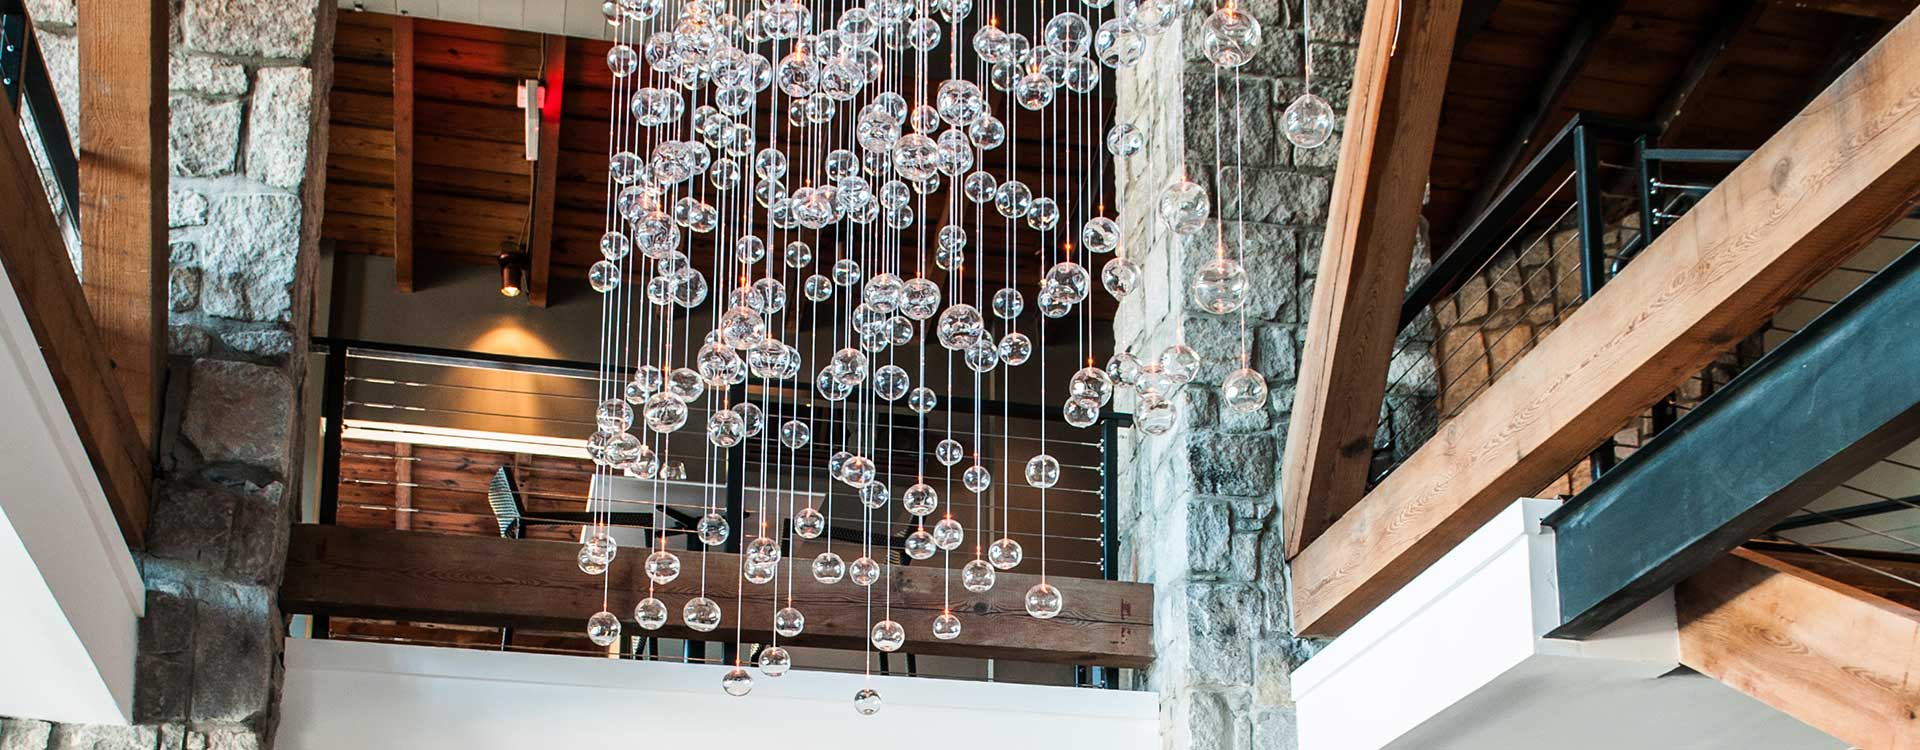 fibre optic lighting in the hotel domestique